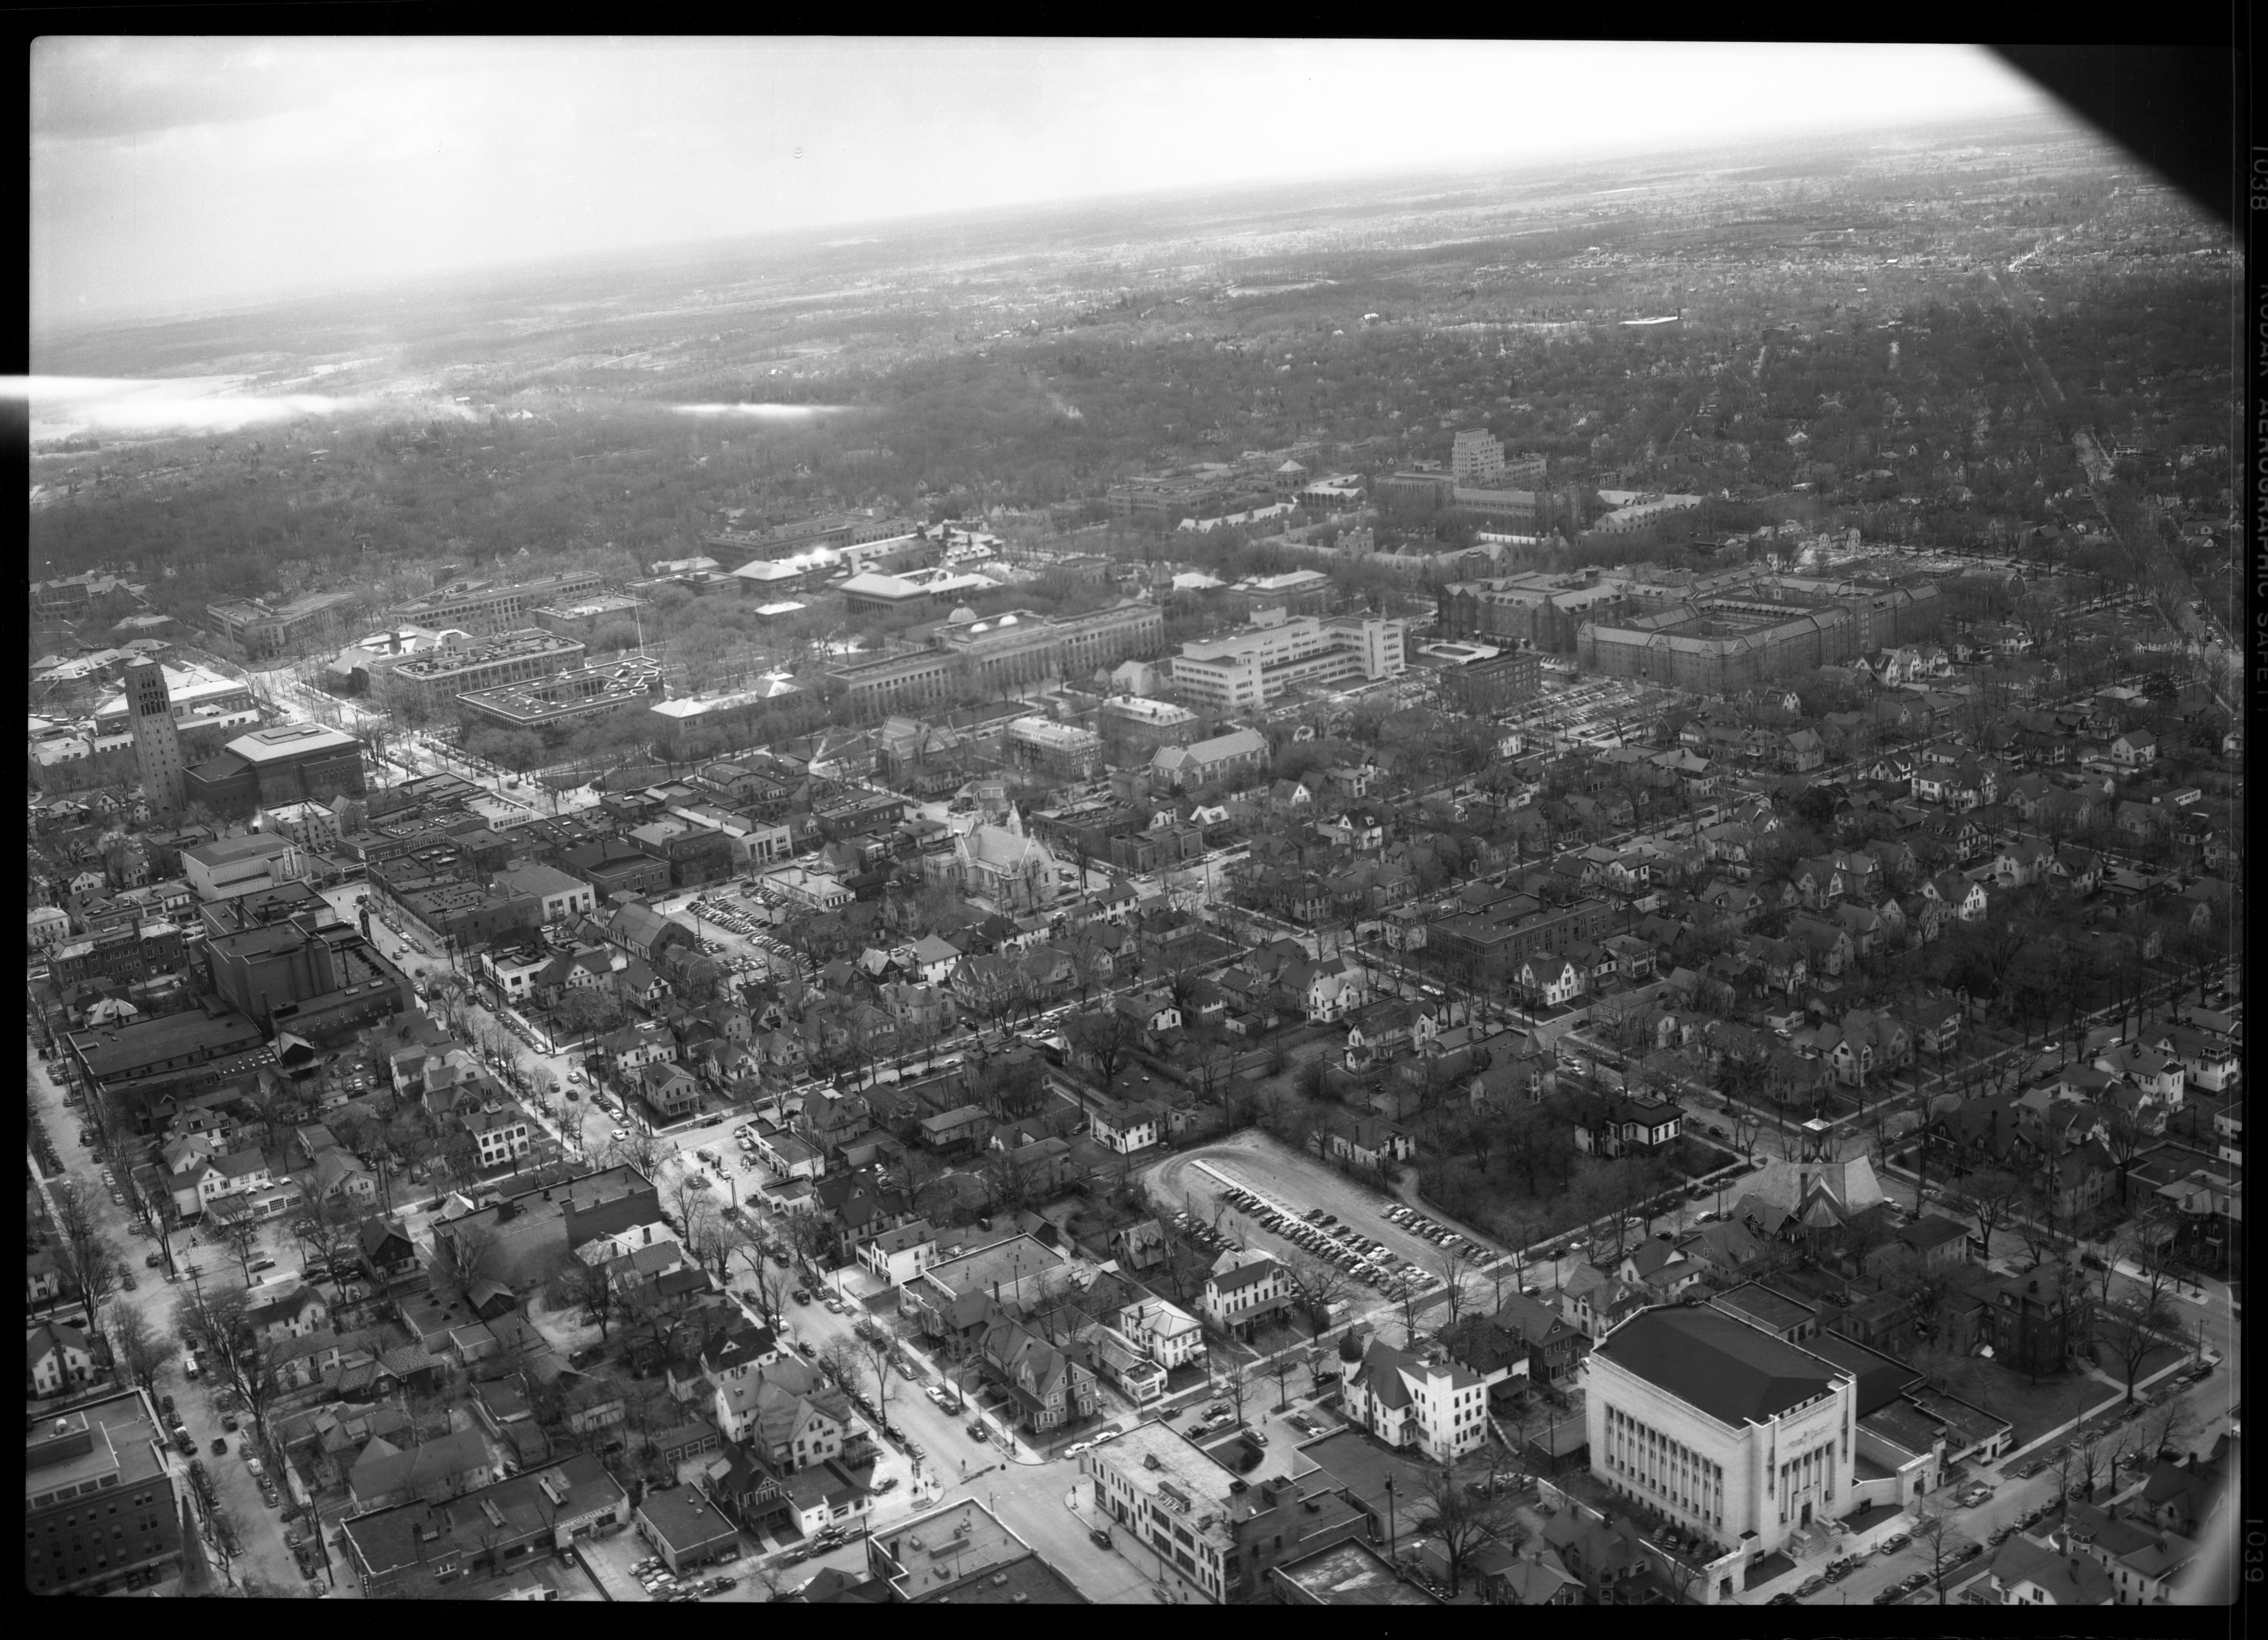 Aerial View from Downtown Ann Arbor looking southeast toward campus, April 1950 image